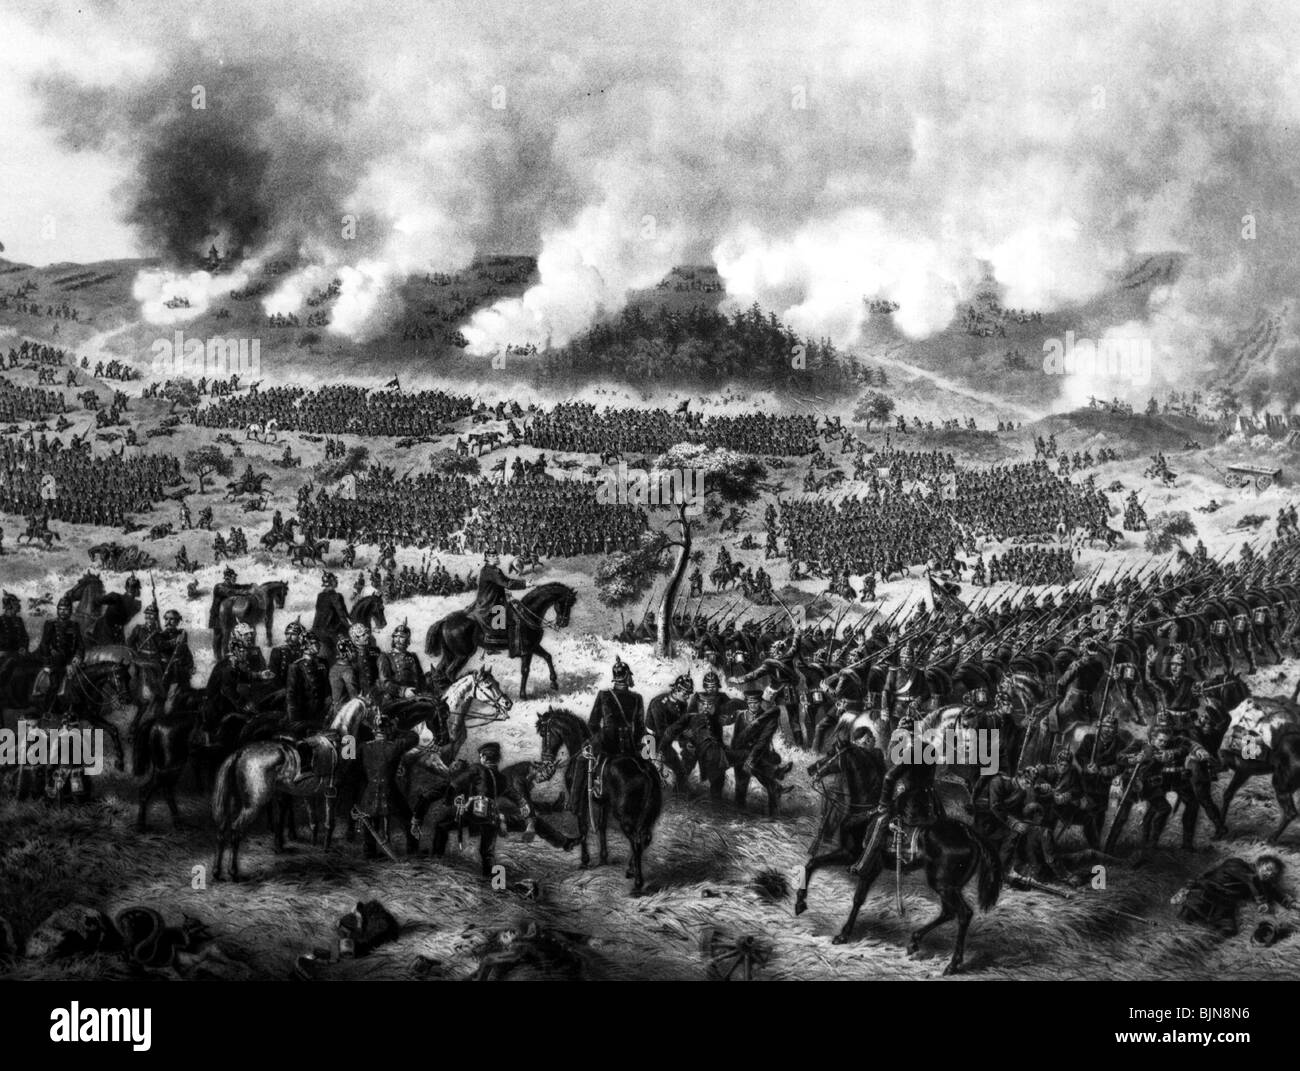 events, Austro-Prussian War 1866, Battle of Koeniggraetz, 3.7.1866, wood engraving, 19th century, Sadova, Bohemia, - Stock Image